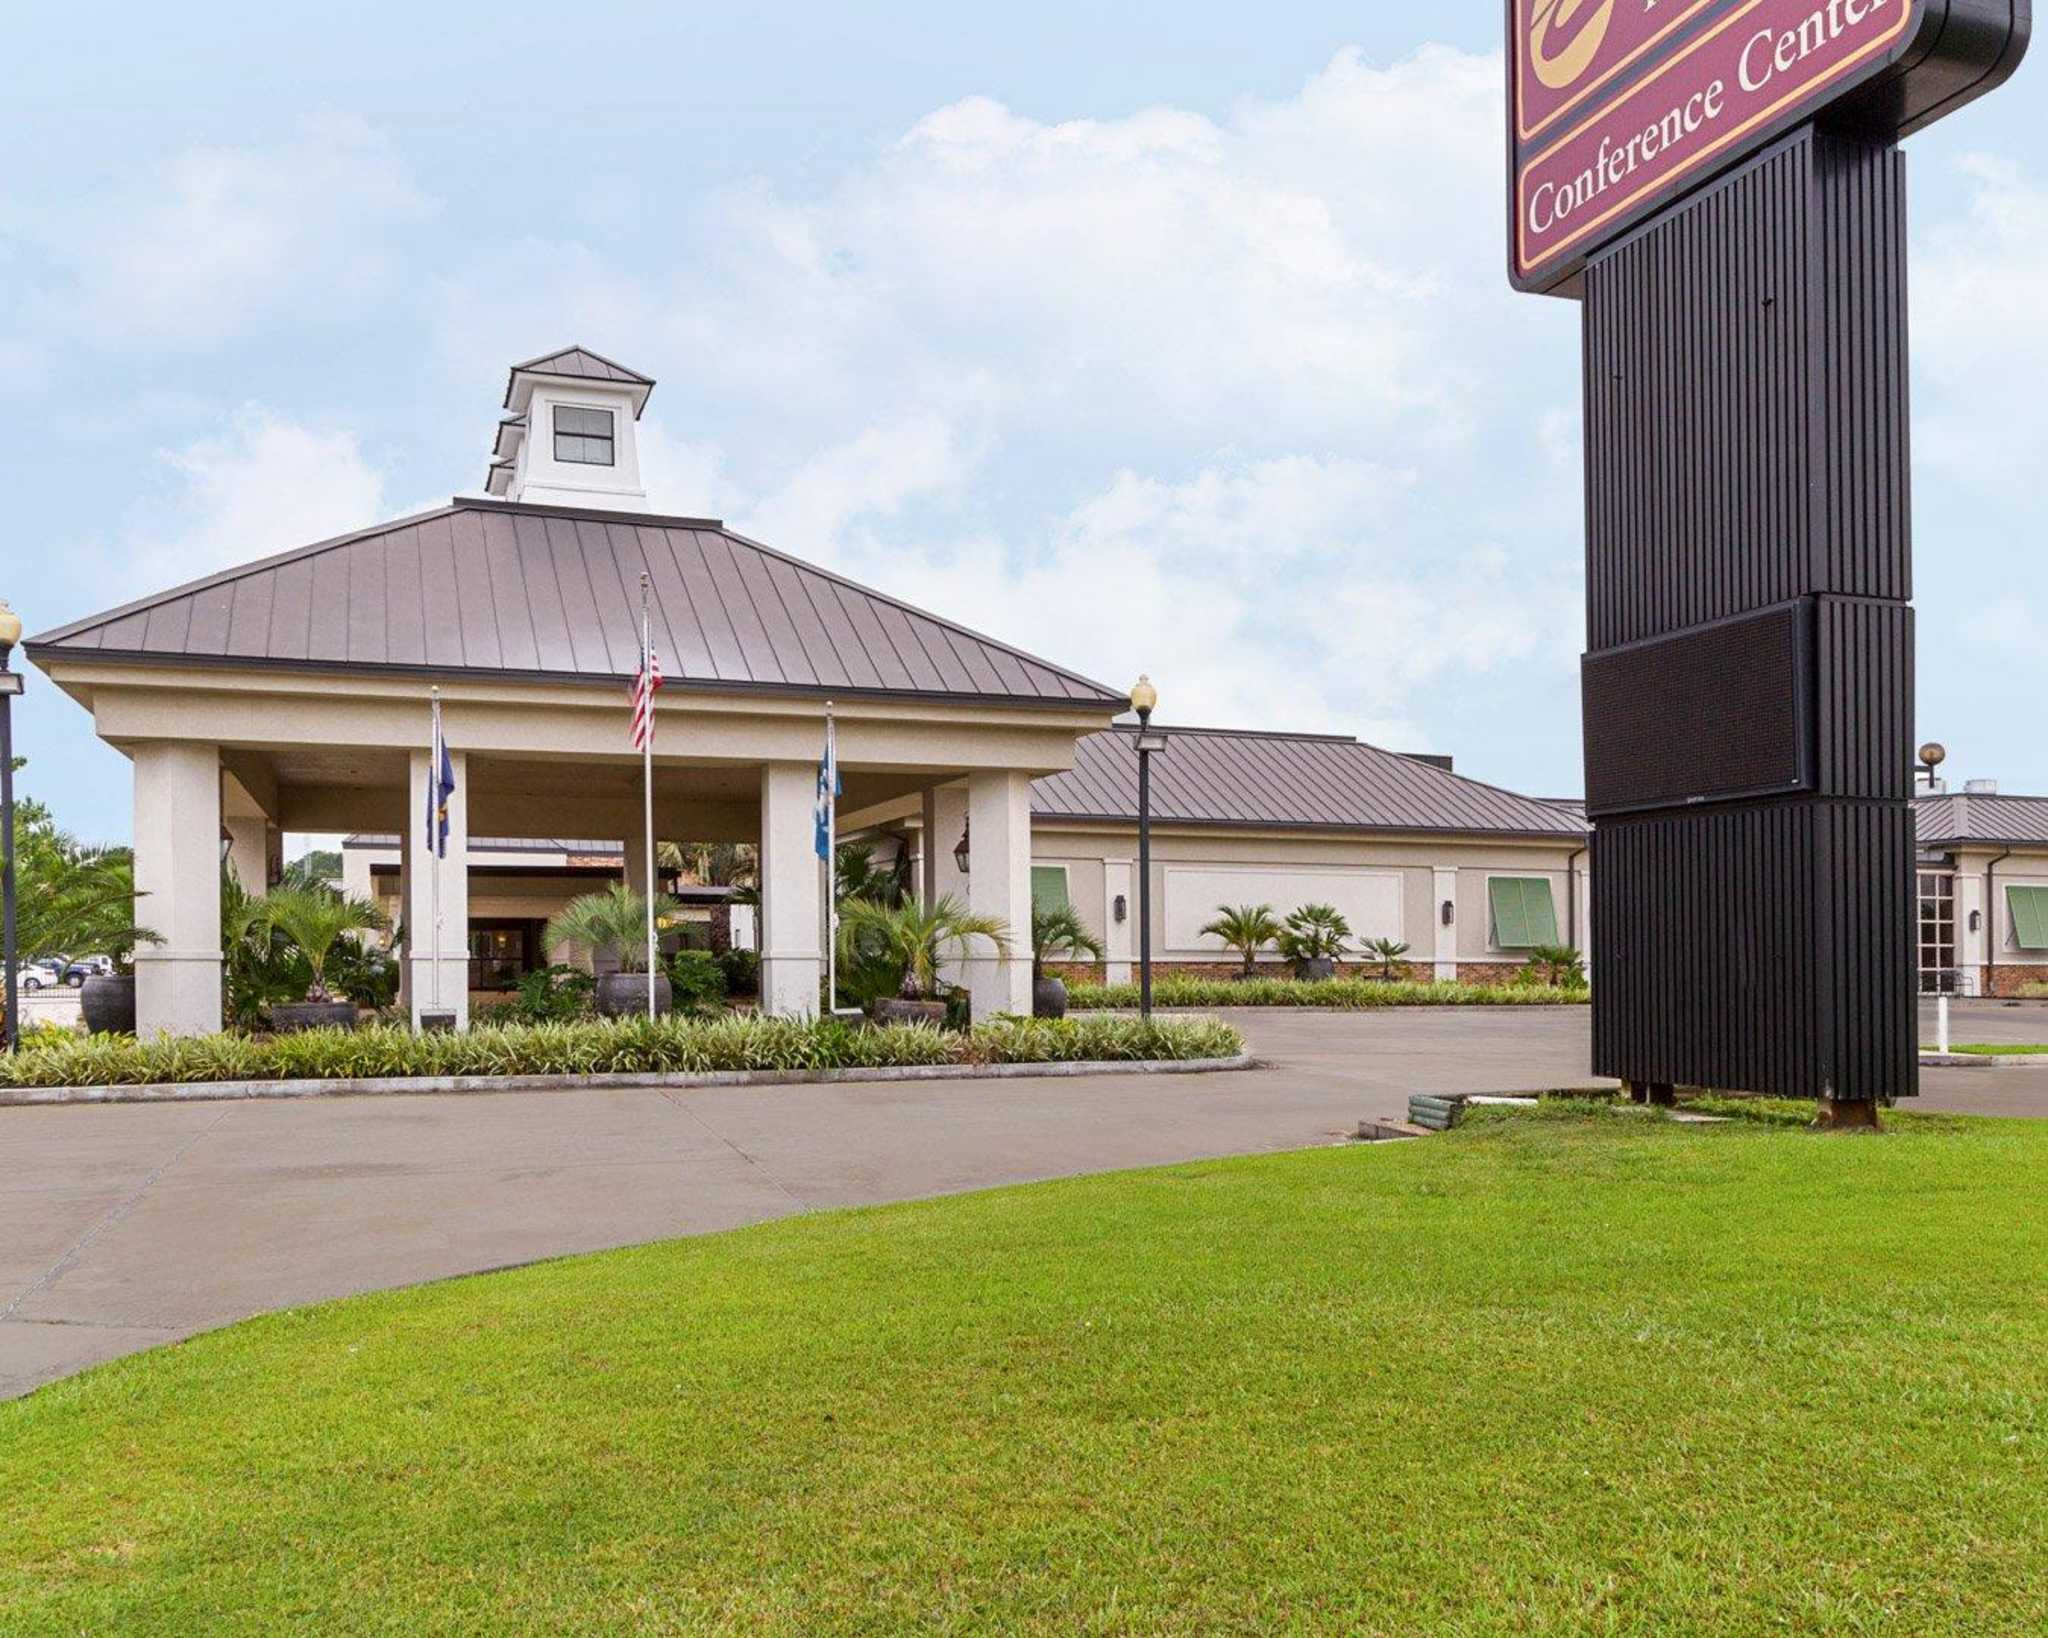 Clarion inn suites conference center covington louisiana la for Hilton garden inn covington la